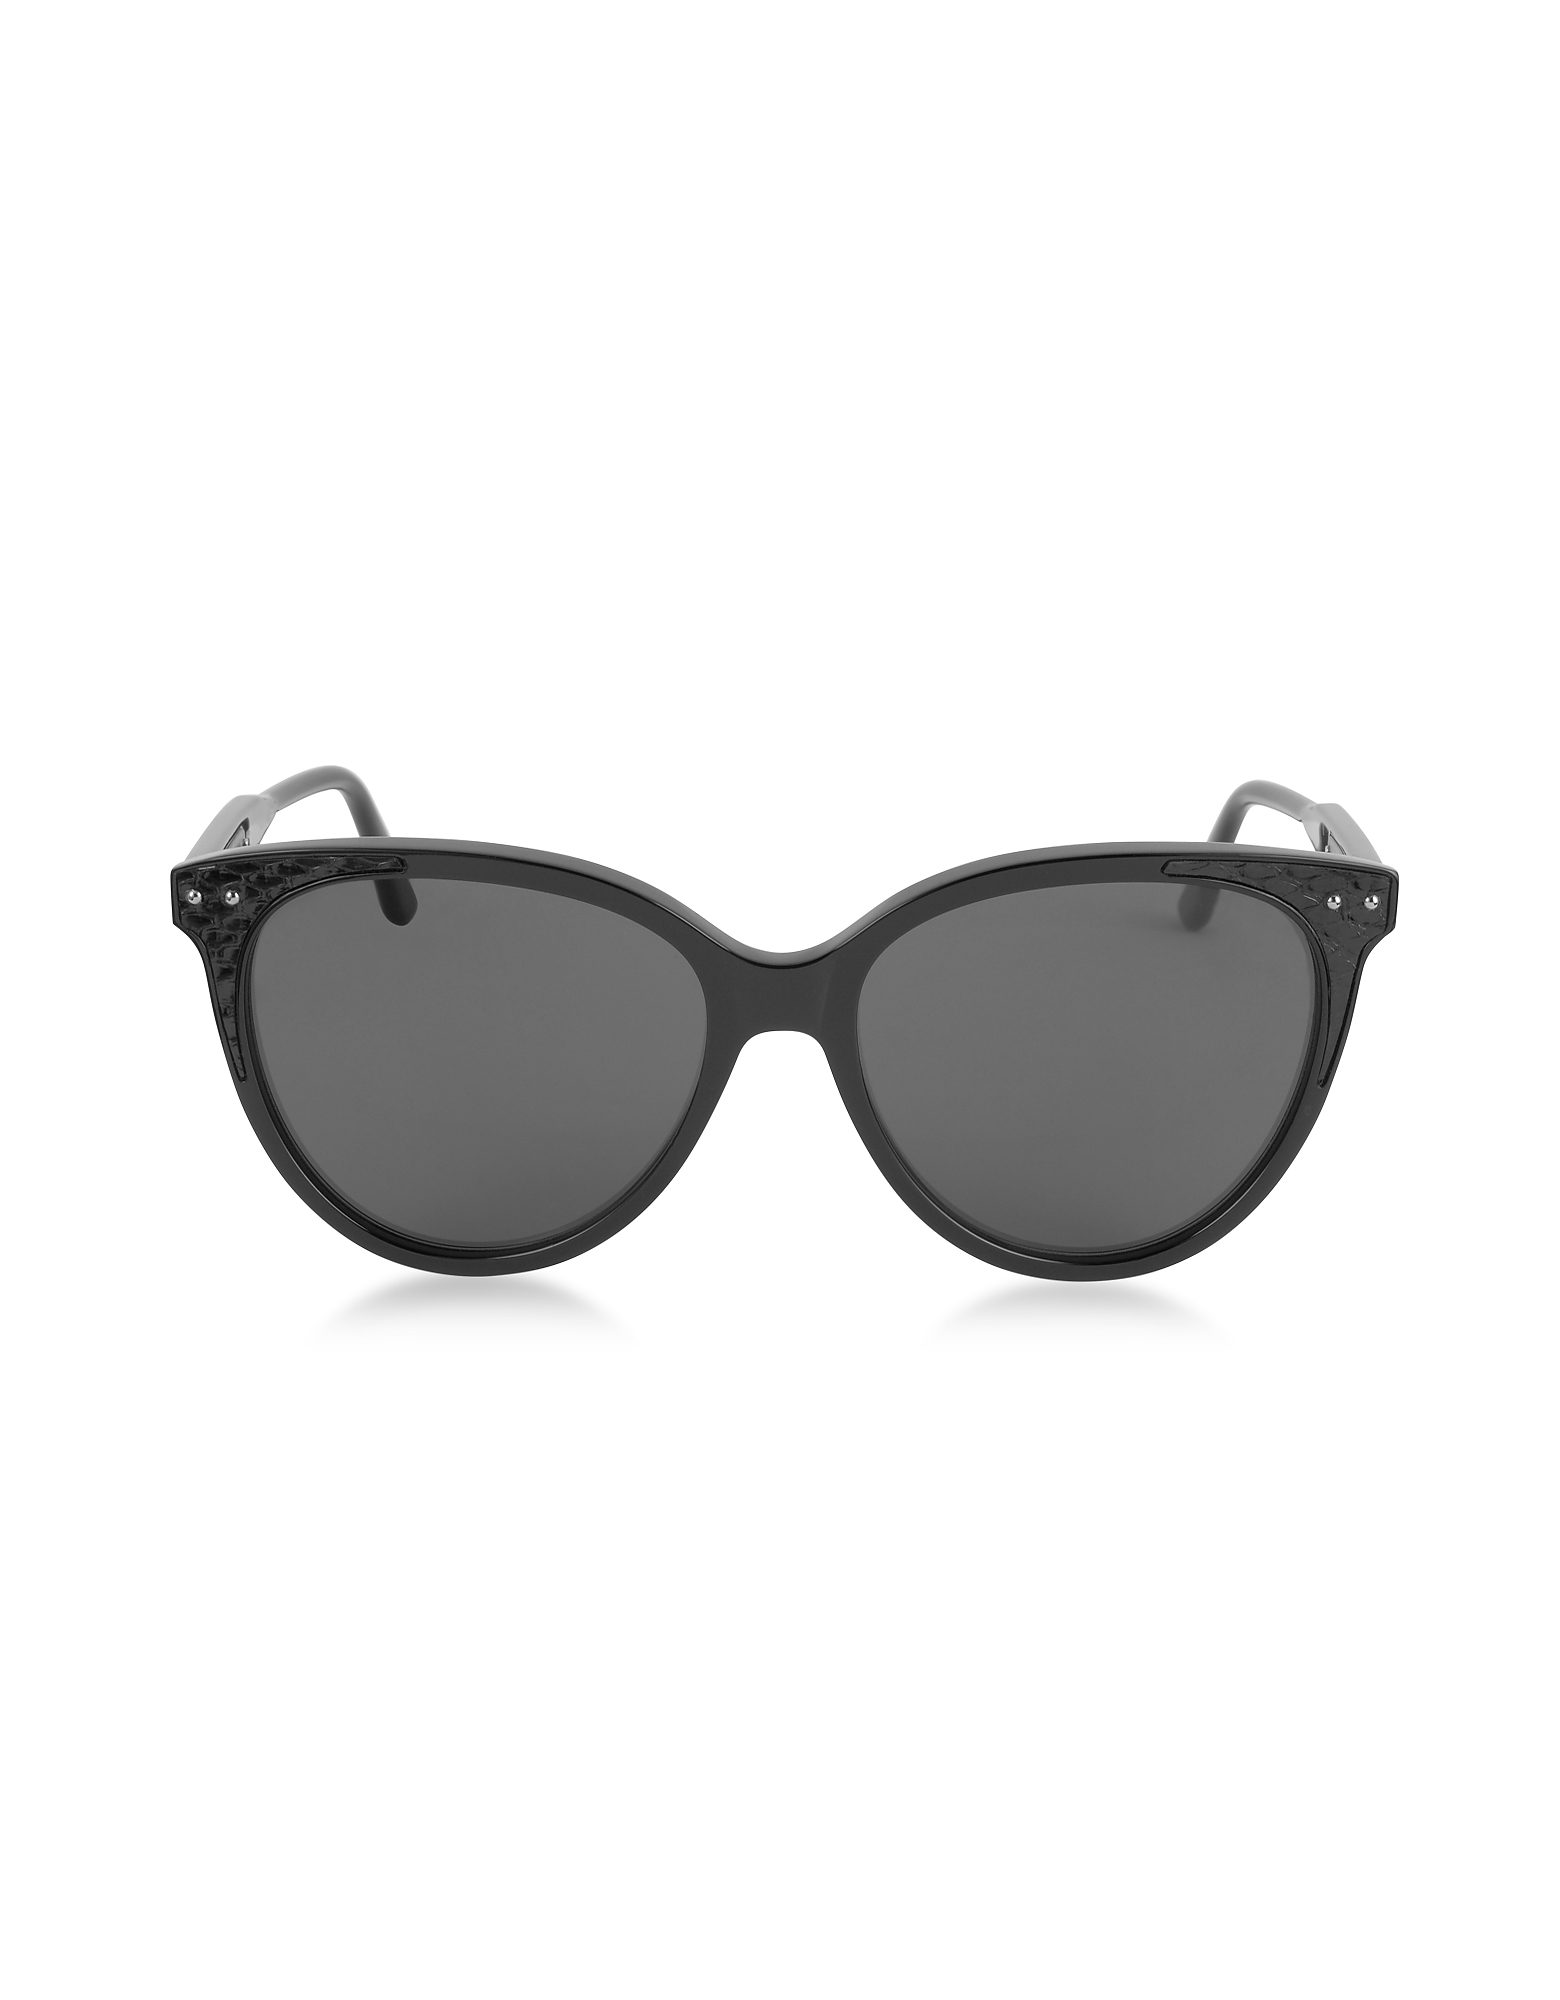 Bottega Veneta Sunglasses, BV0119S Acetate Cat-Eye Frame Women's Sunglasses